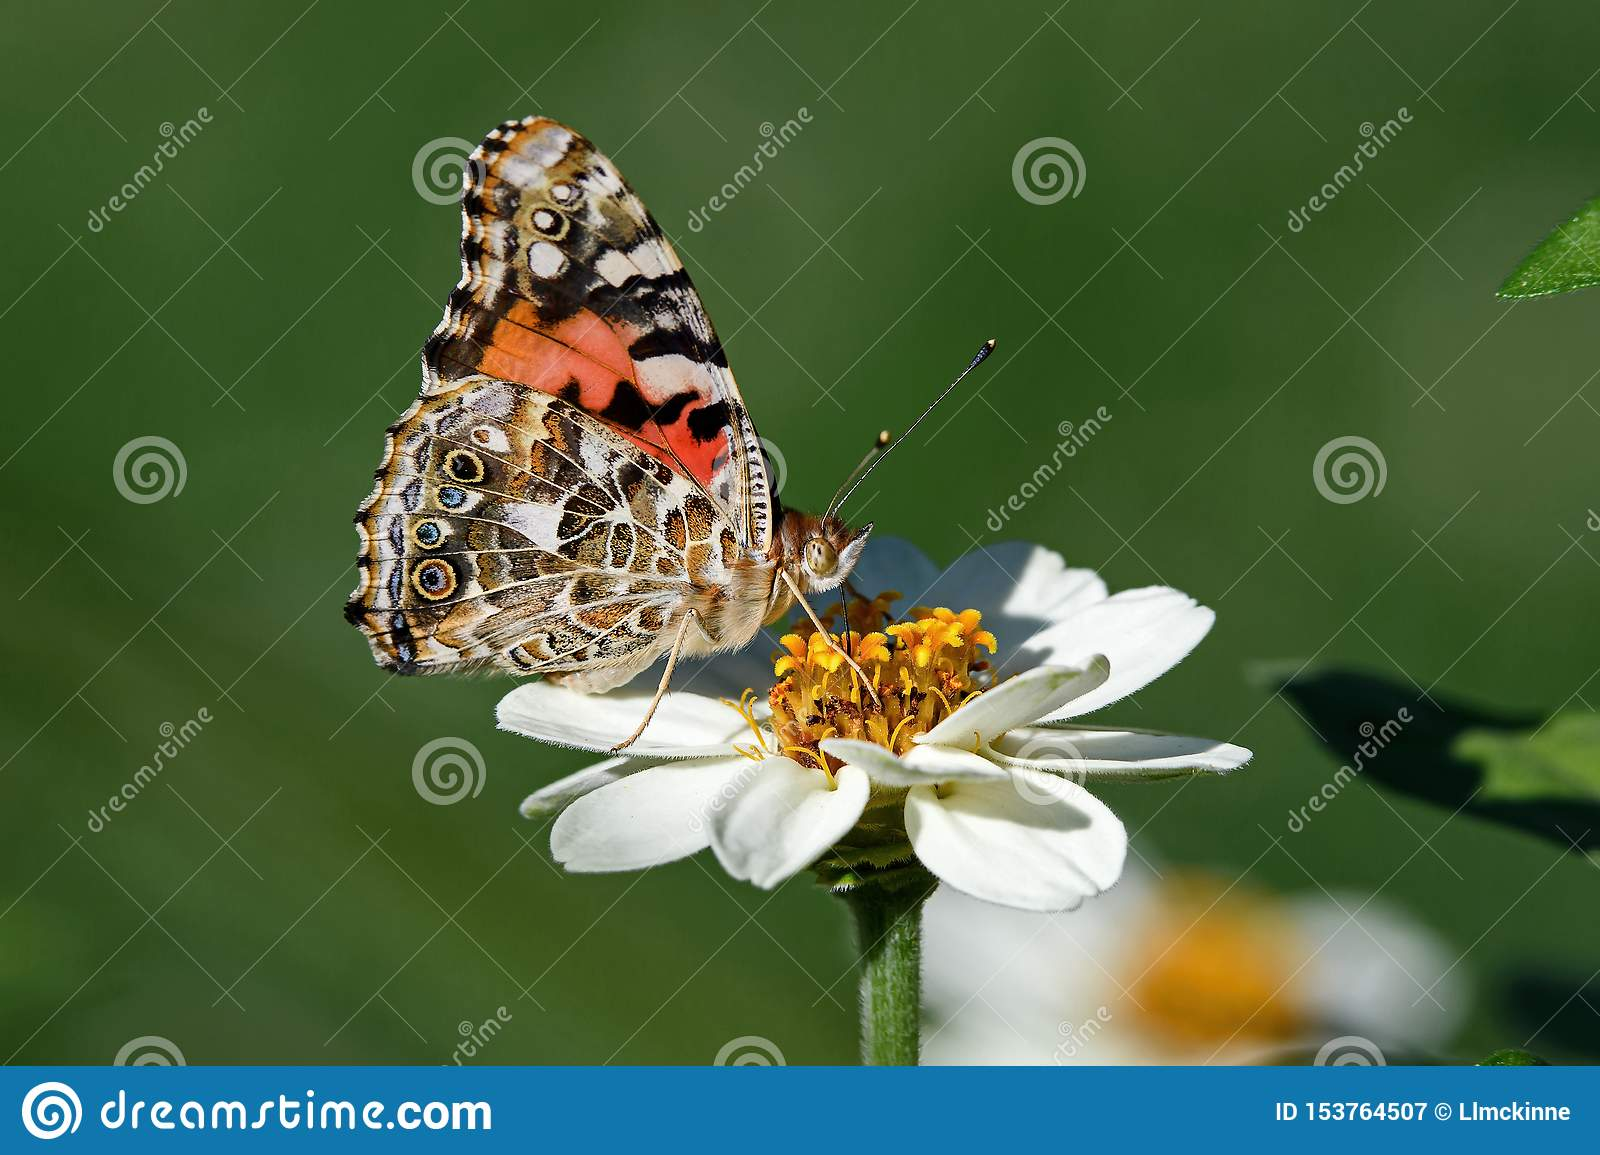 Painted Lady Or Vanessa Cardui A Well Known Colorful